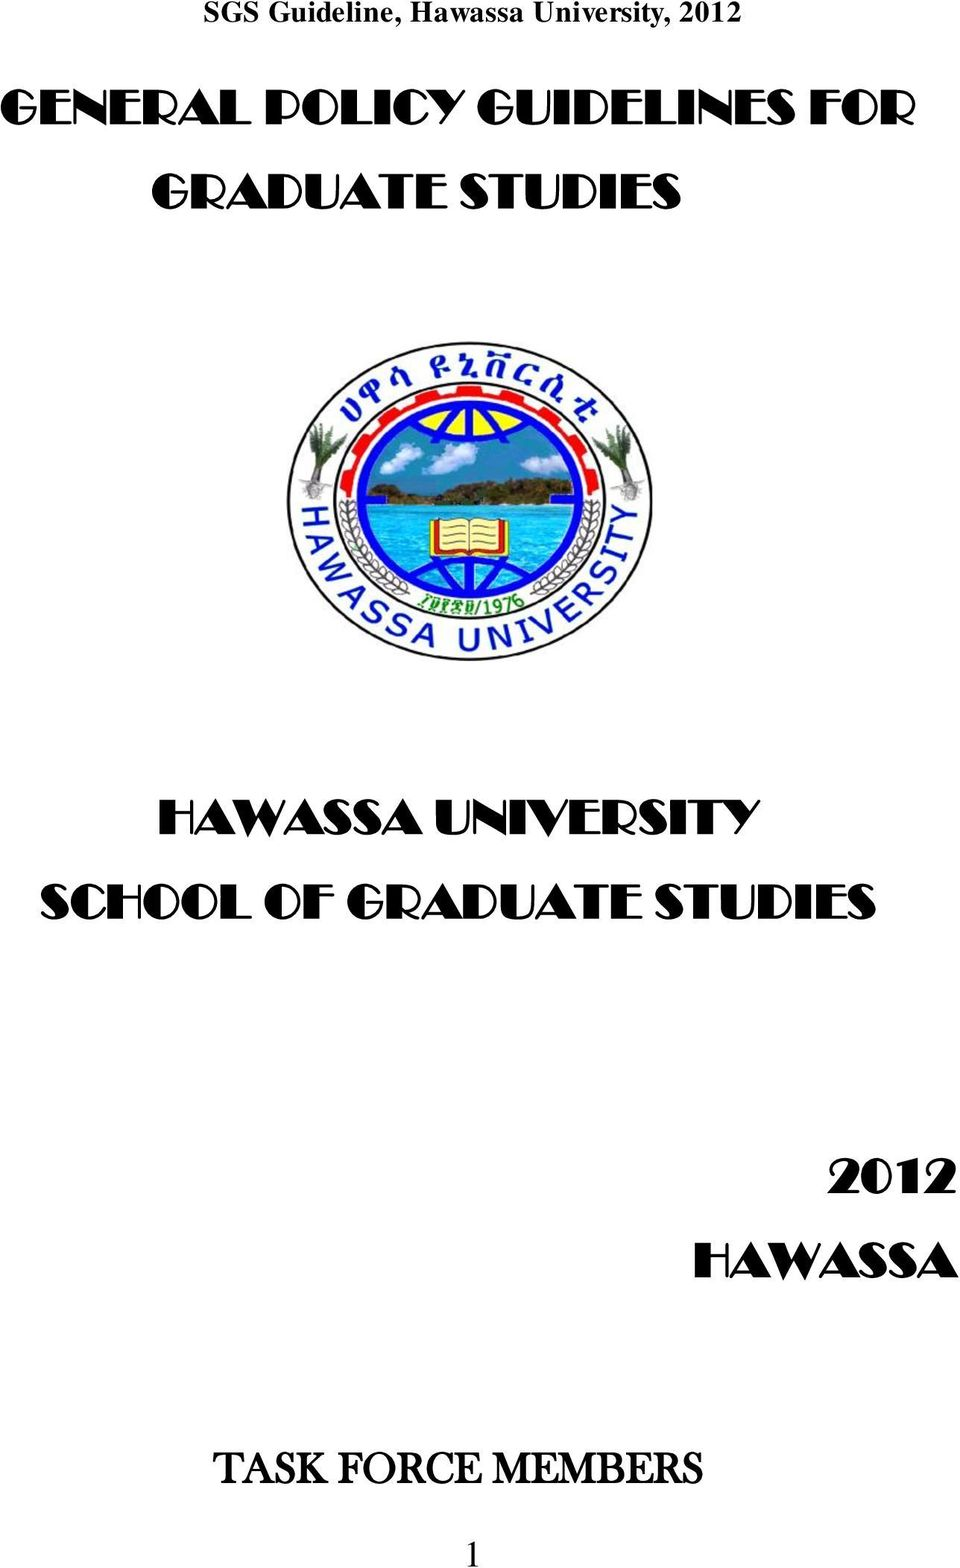 GENERAL POLICY GUIDELINES FOR GRADUATE STUDIES HAWASSA